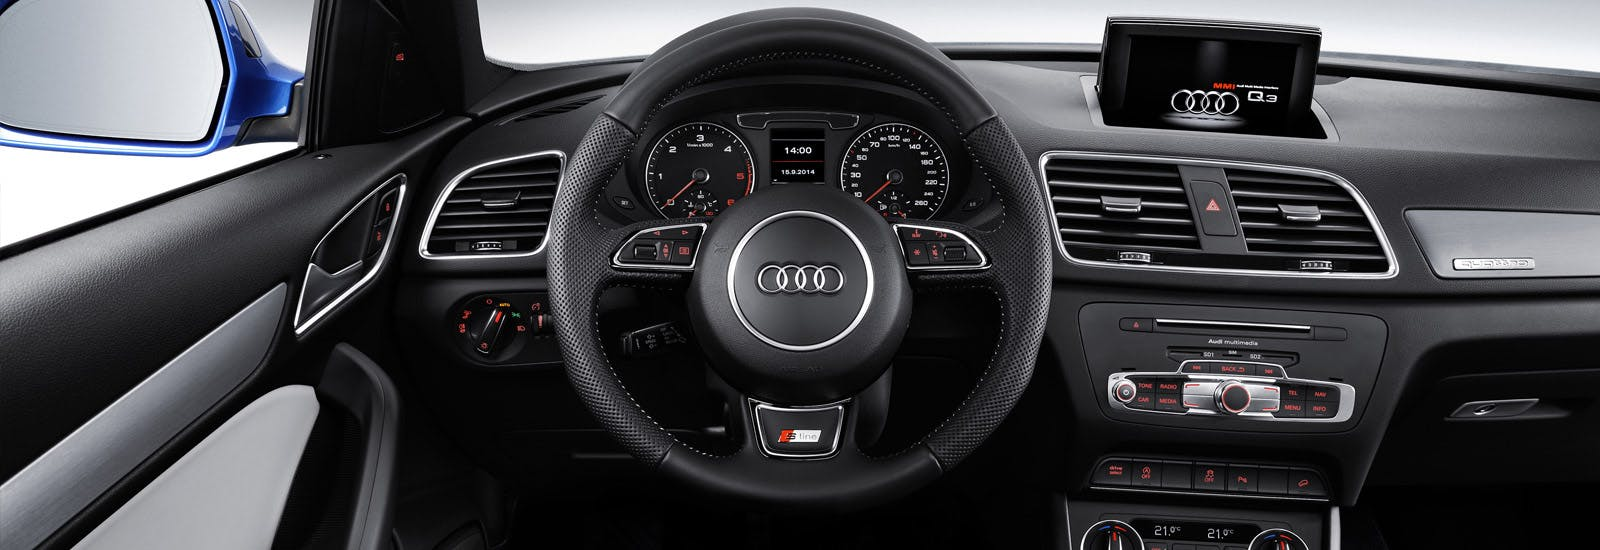 2018 audi q3 price specs and release date carwow autos post. Black Bedroom Furniture Sets. Home Design Ideas